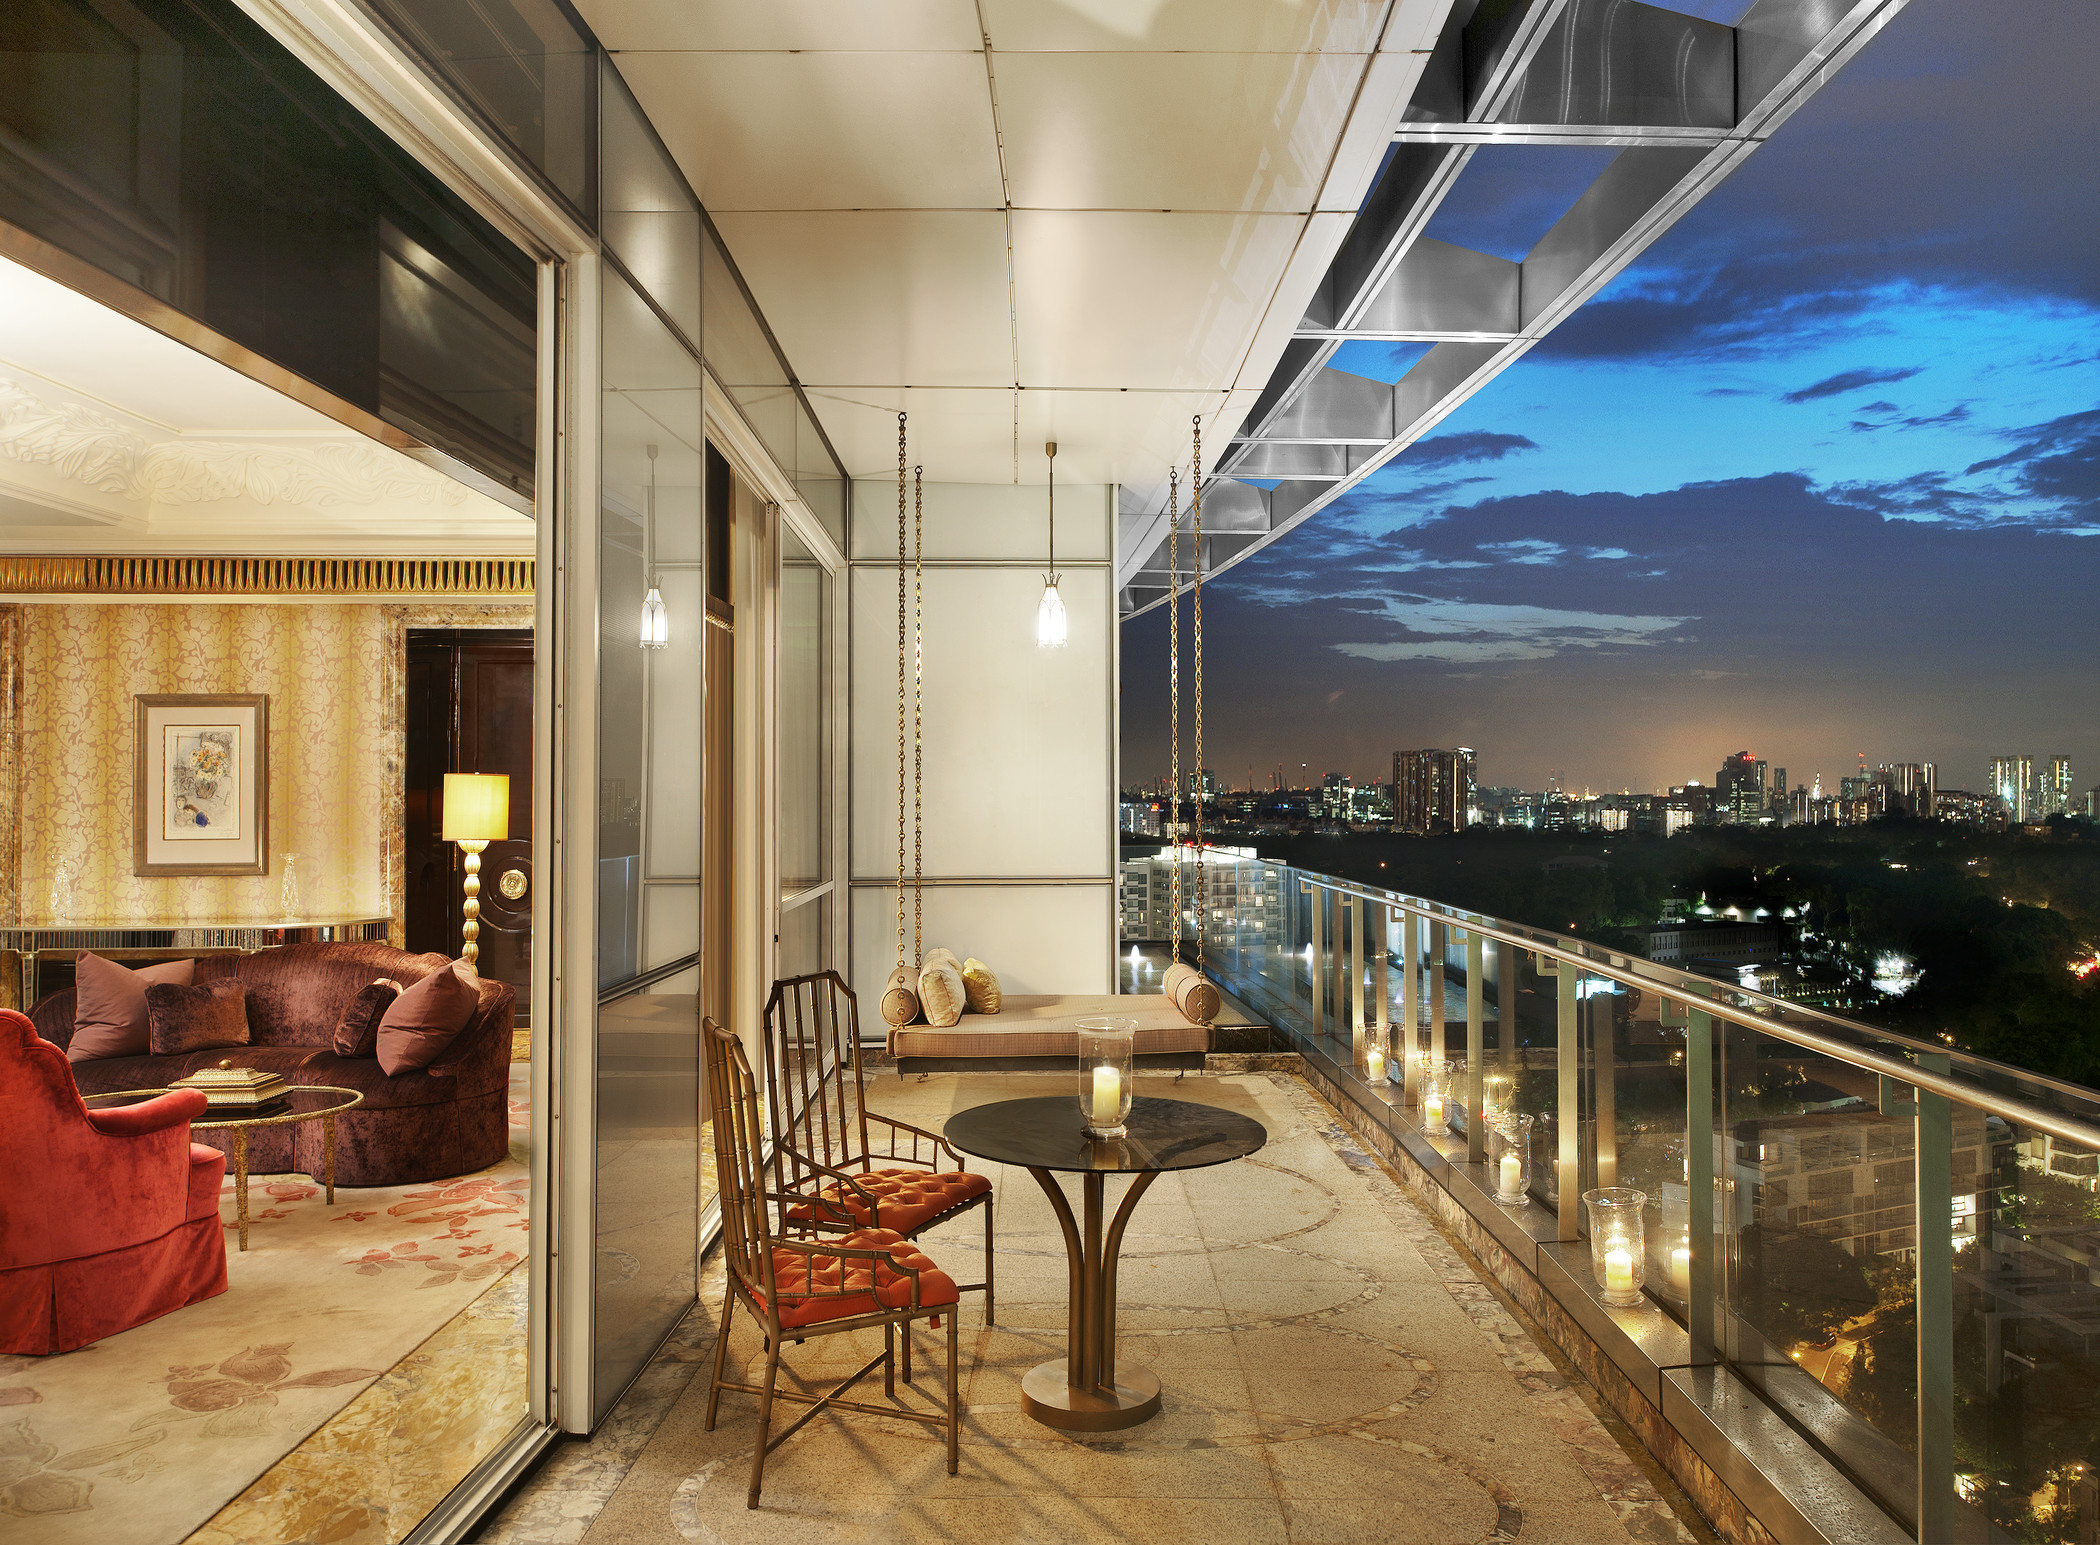 Luxurious weekend in the st regis singapore best hotel for Super luxury hotels in dubai